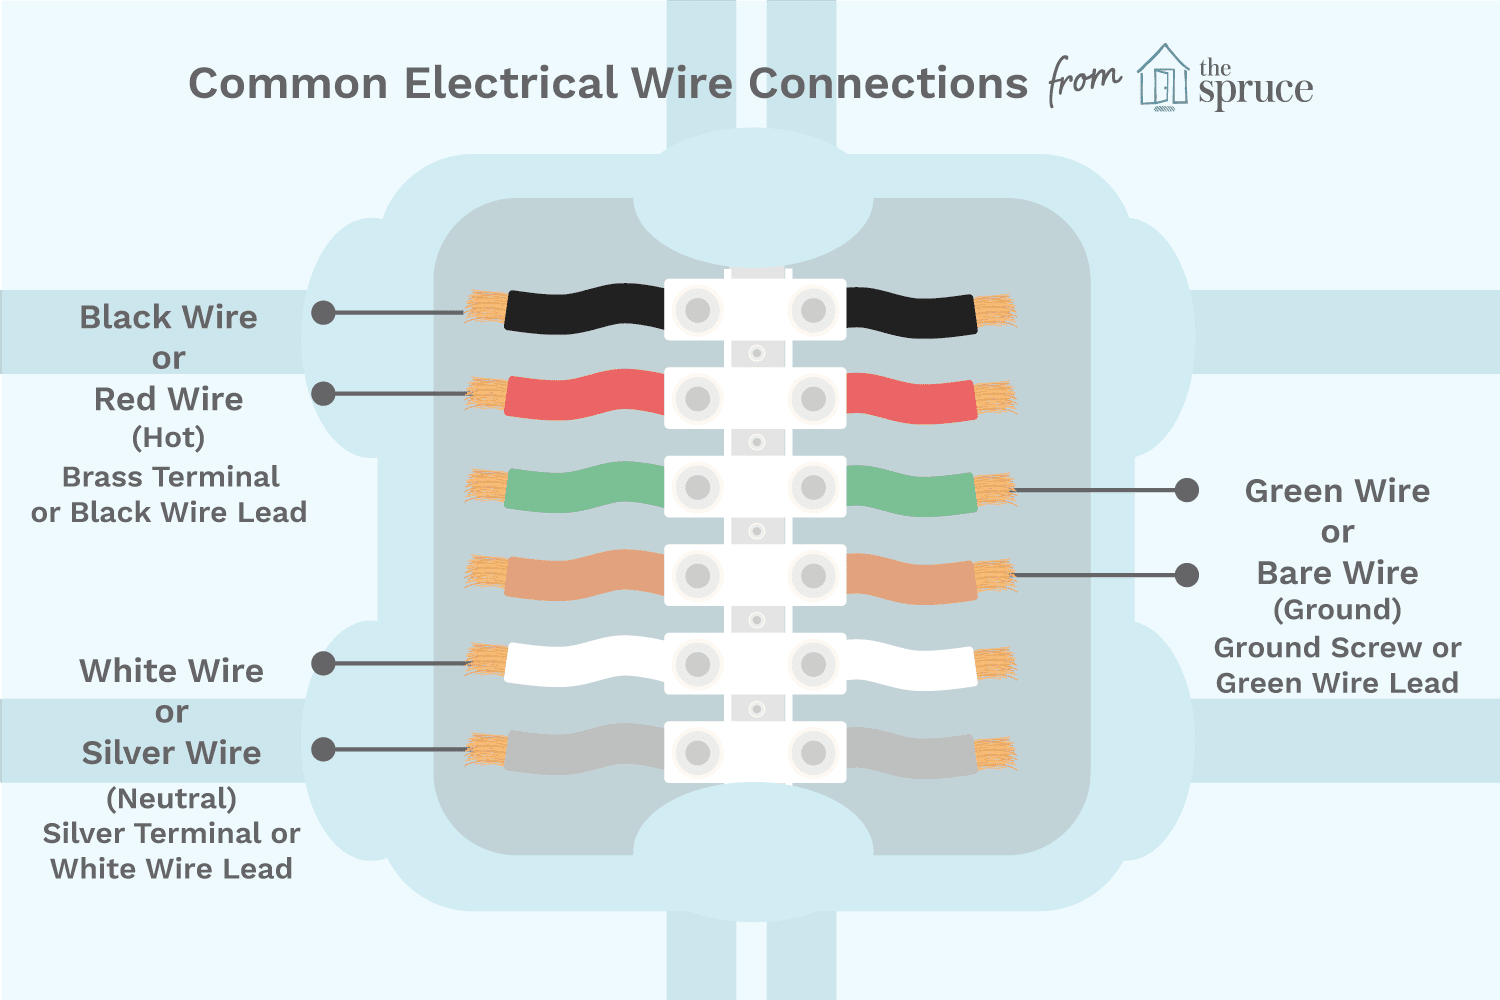 Color Coding Of Electrical Wires And Terminal Screws Wiring Multiple Outlets Pigtail Electric